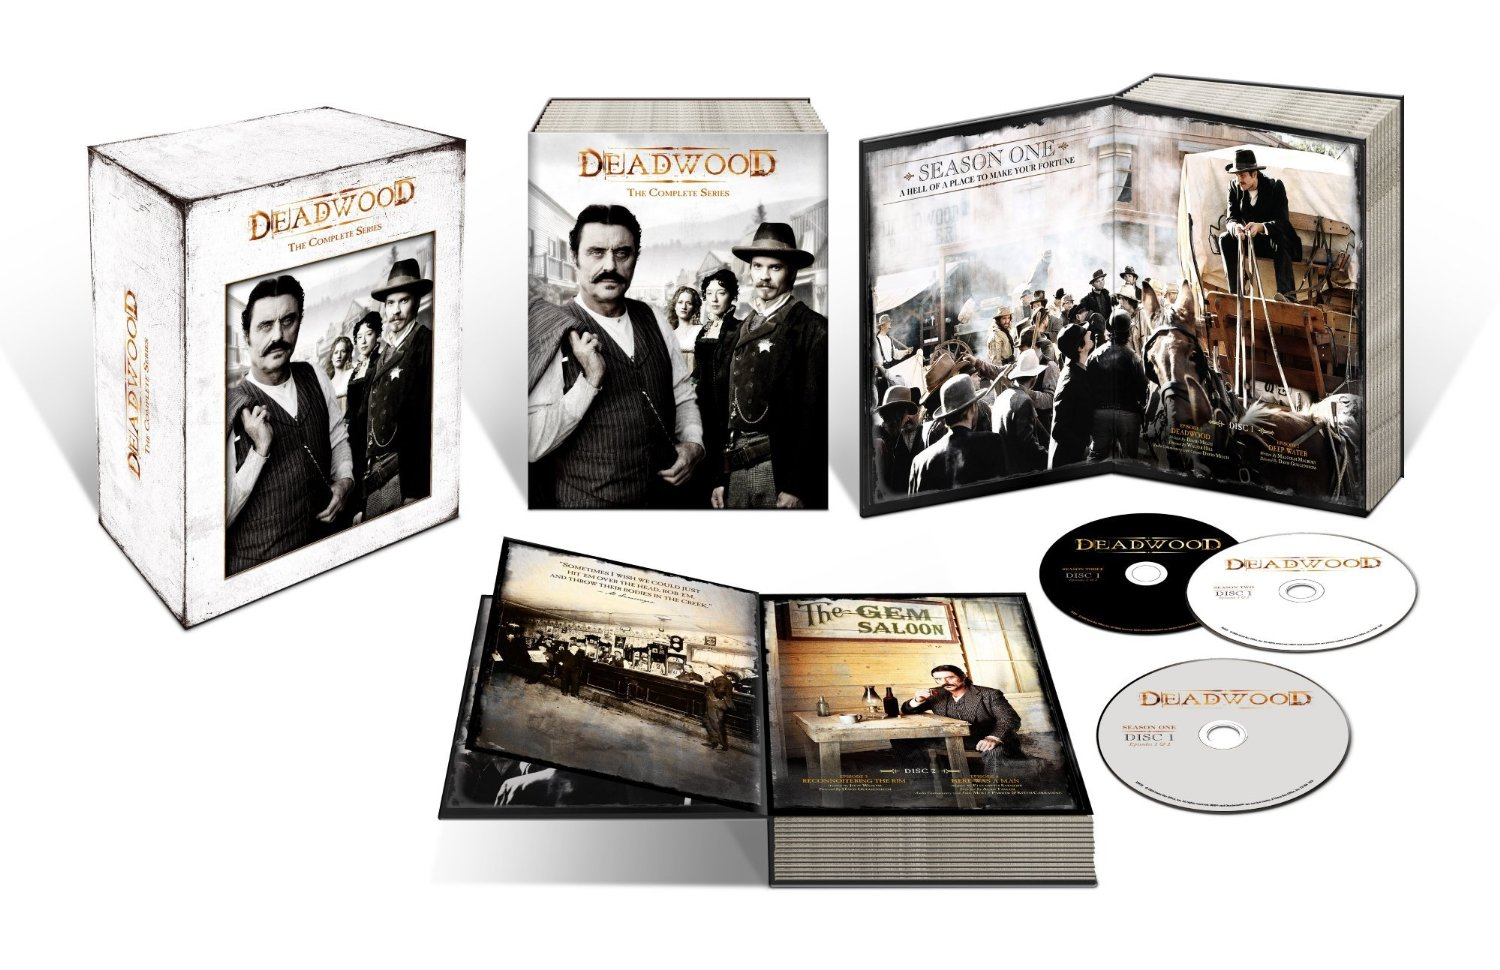 deadwood complete series inside